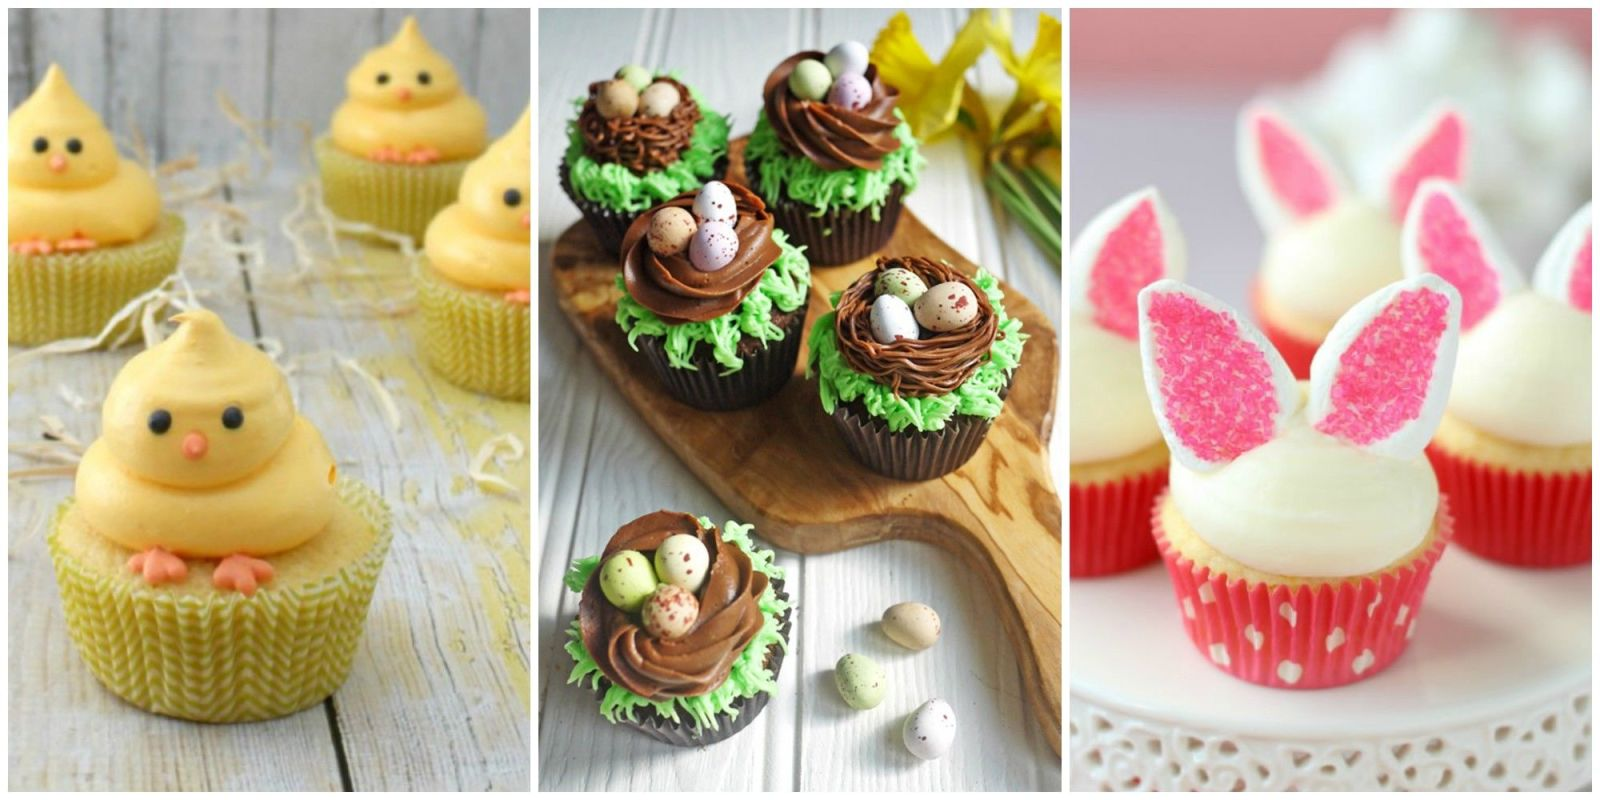 Creative cupcake decorating ideas for Creative cupcake recipes and decorating ideas